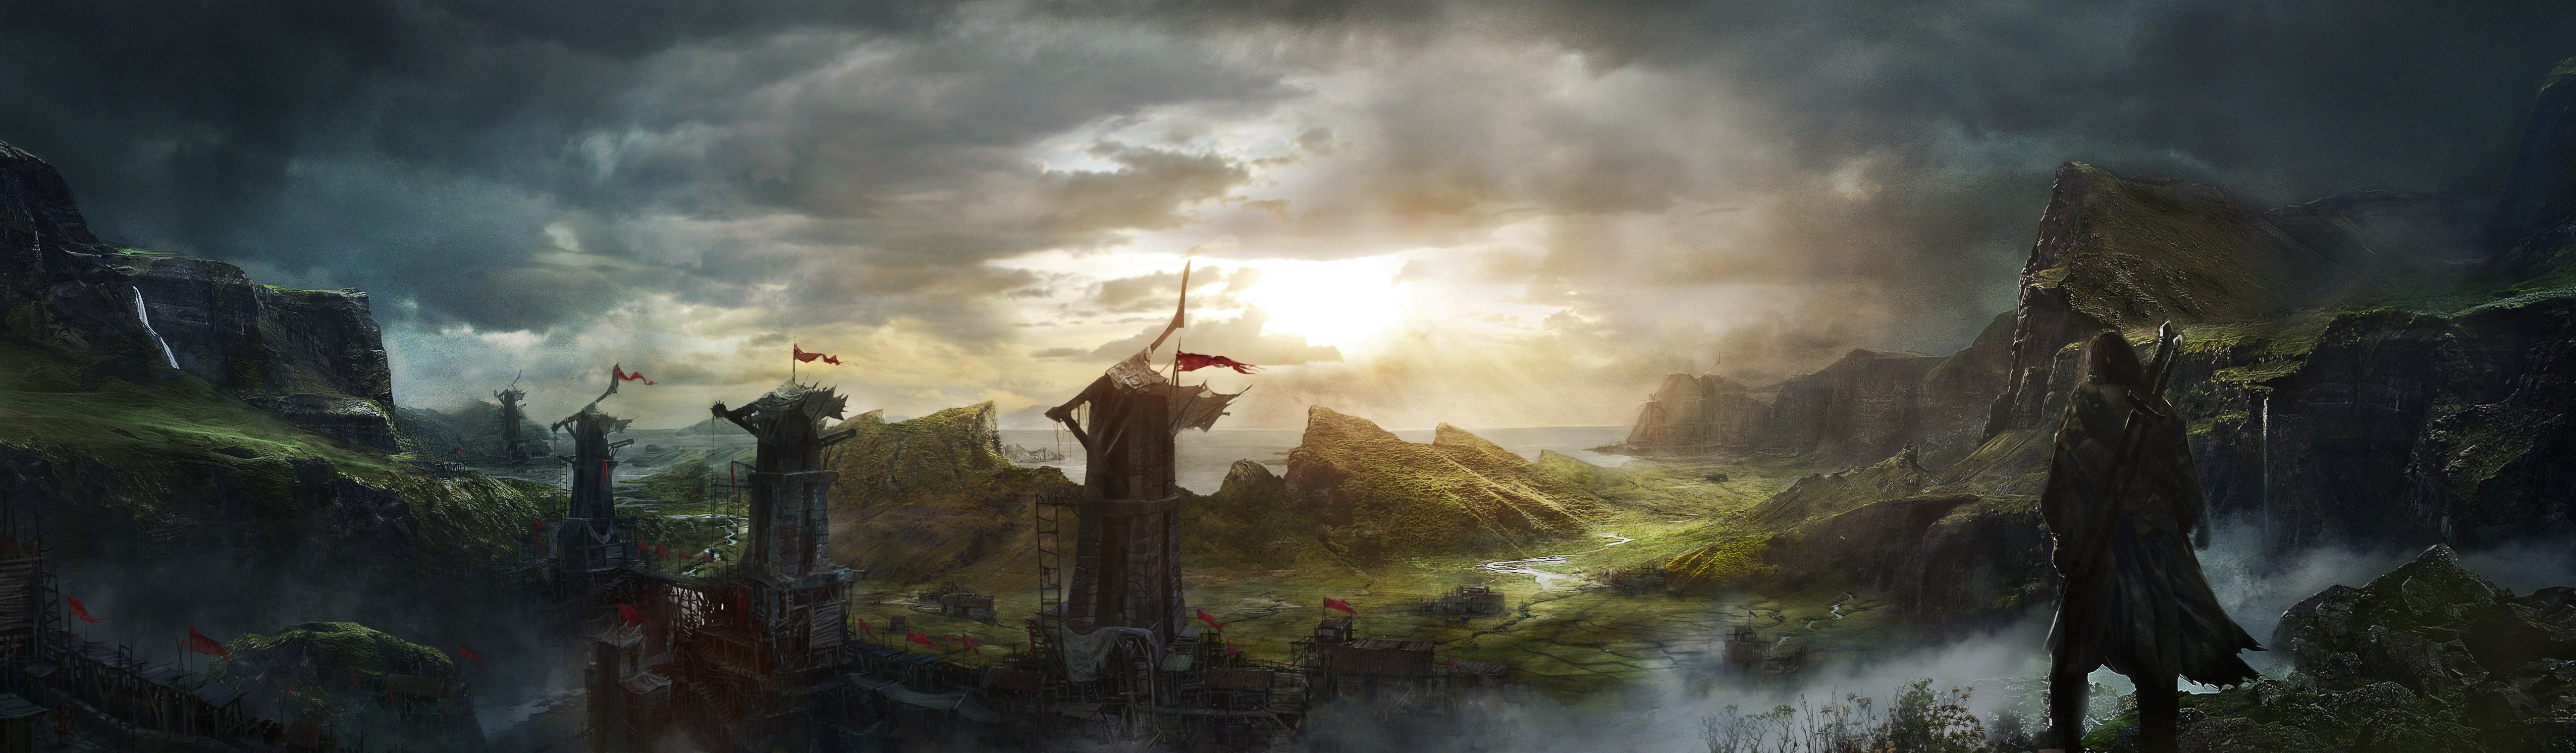 Middle Earth Background Posted By Ethan Johnson